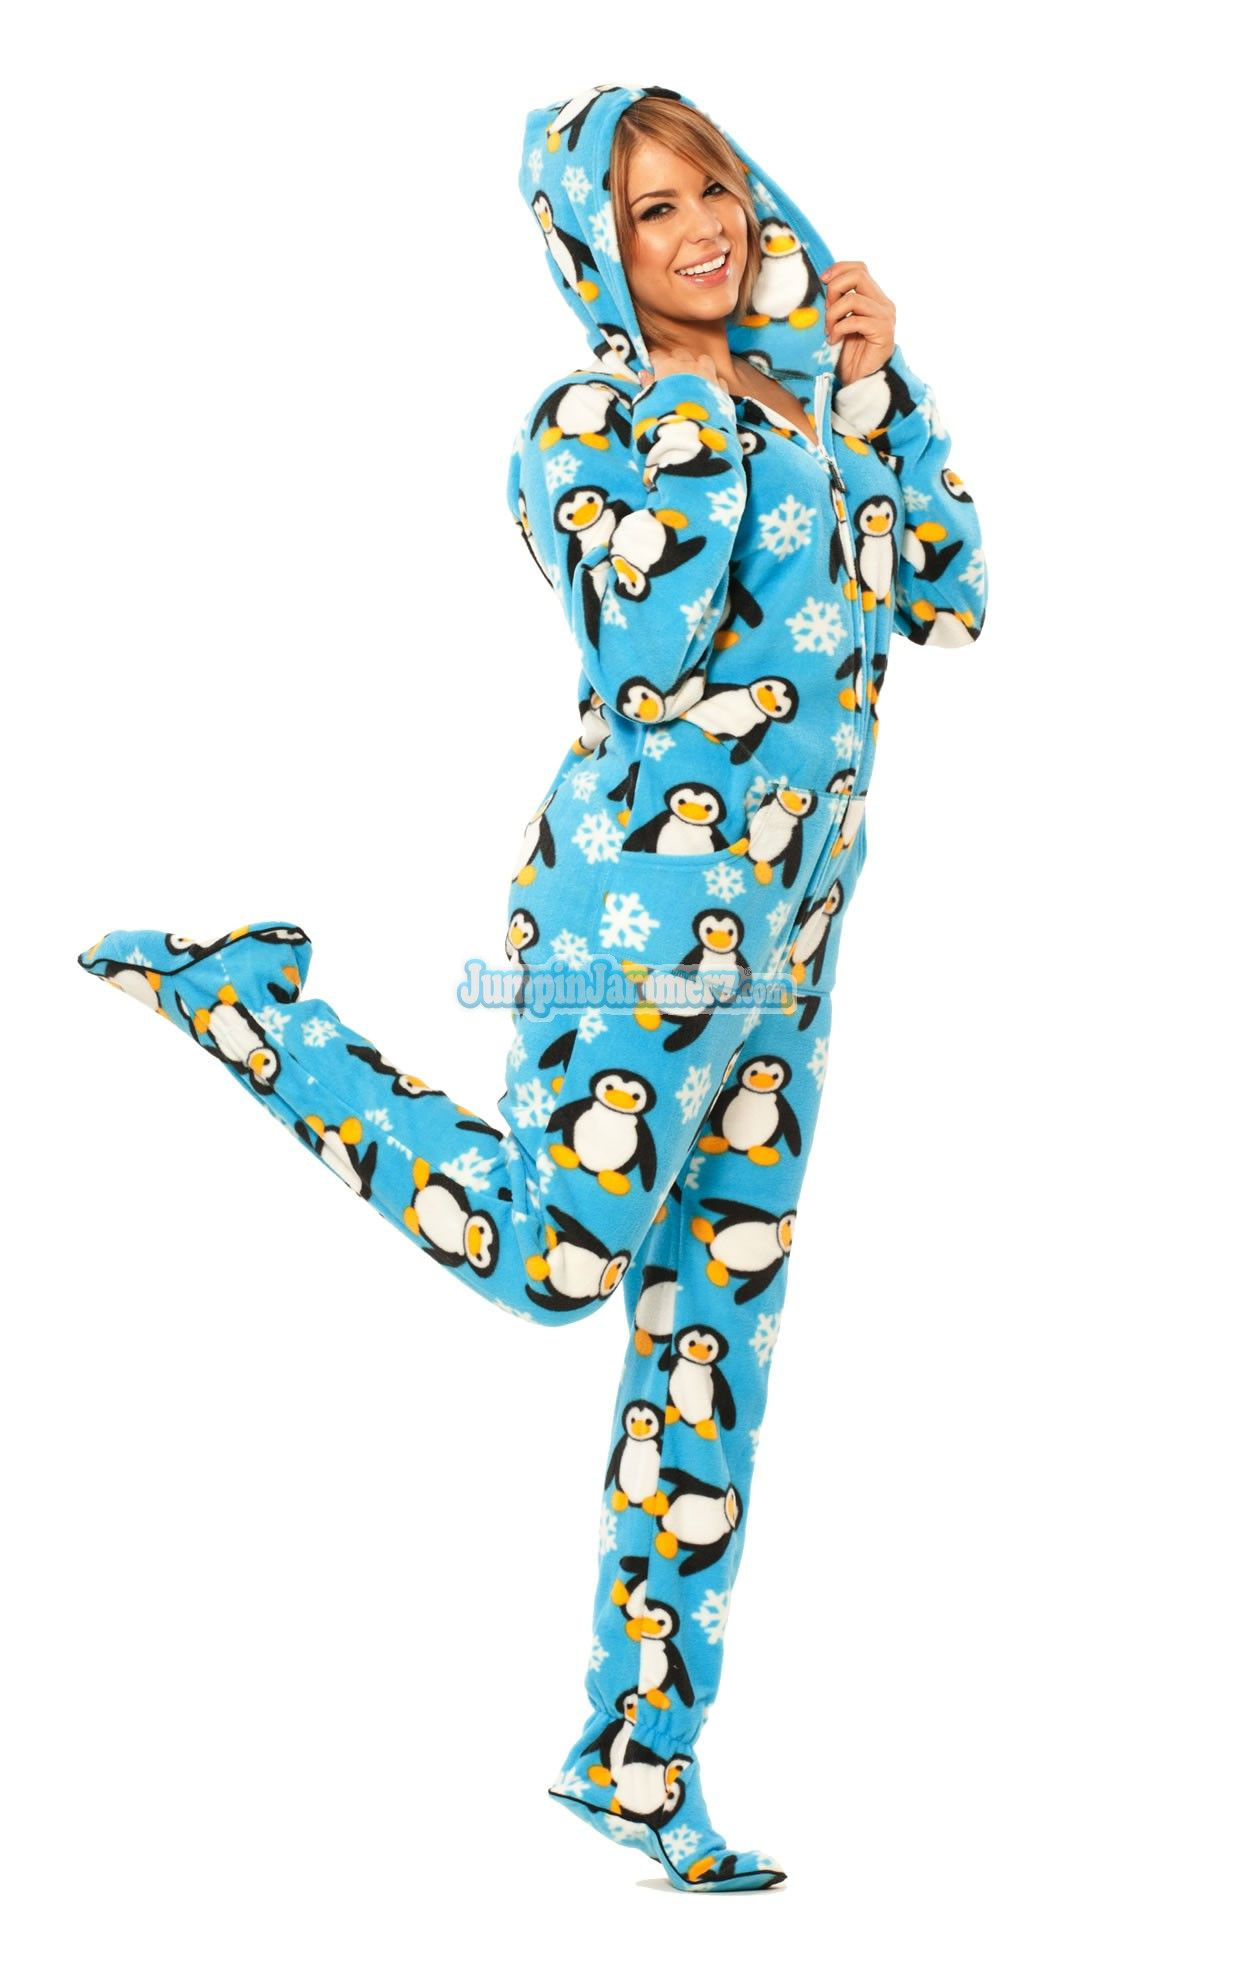 You searched for: onesie pajamas! Etsy is the home to thousands of handmade, vintage, and one-of-a-kind products and gifts related to your search. No matter what you're looking for or where you are in the world, our global marketplace of sellers can help you find unique and affordable options. Let's get started!